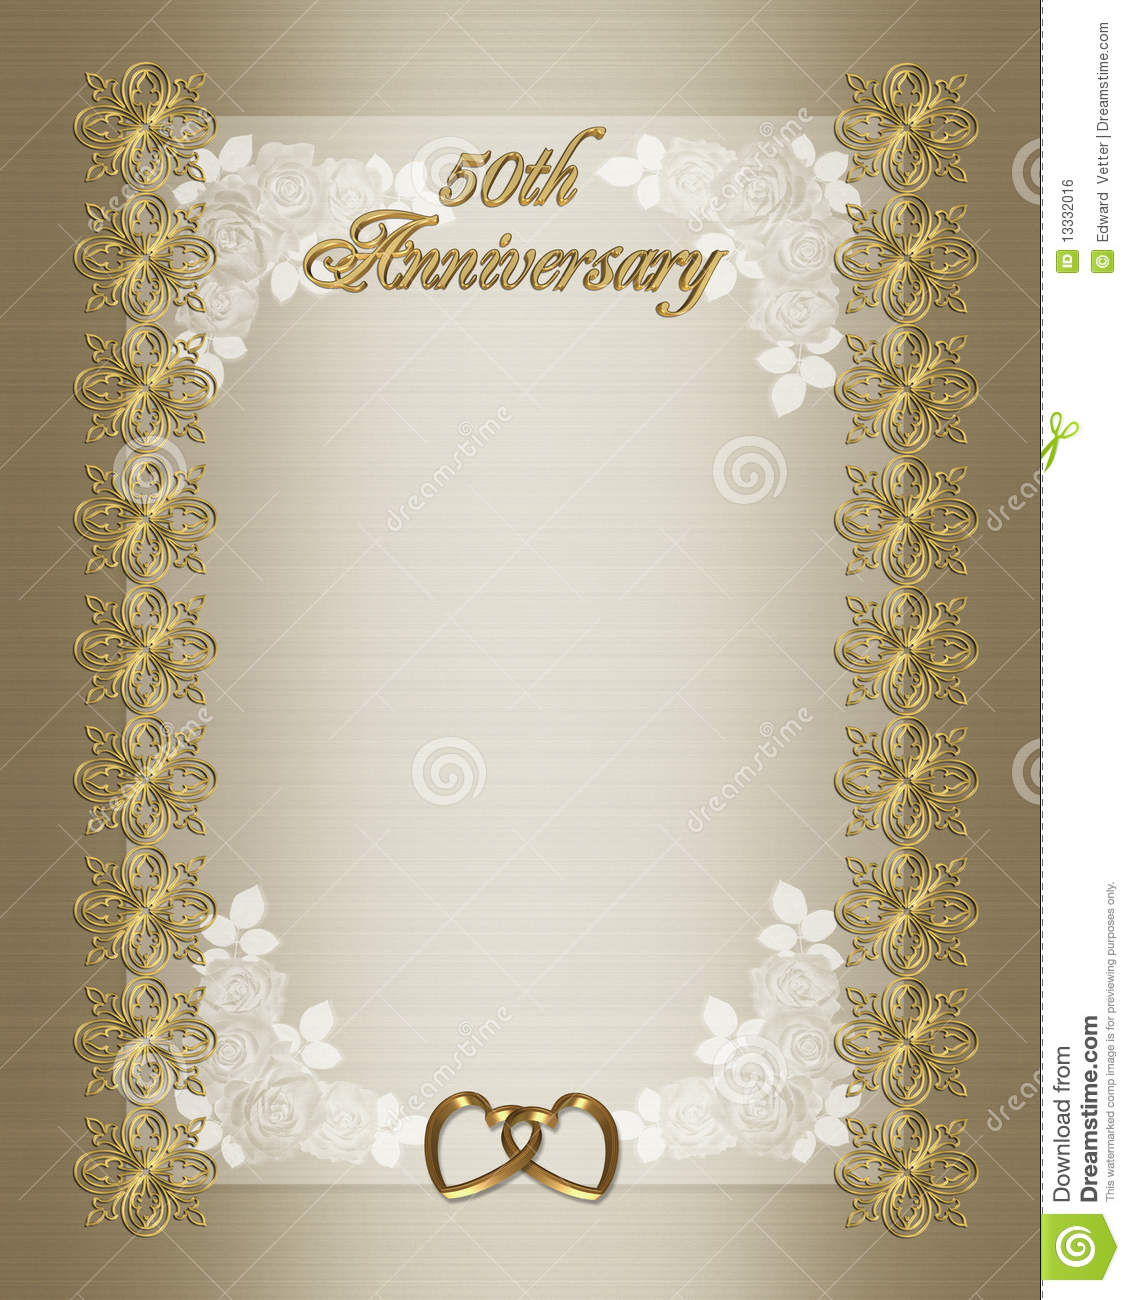 50th wedding anniversary invitation template stock illustration 50th wedding anniversary invitation template stopboris Choice Image